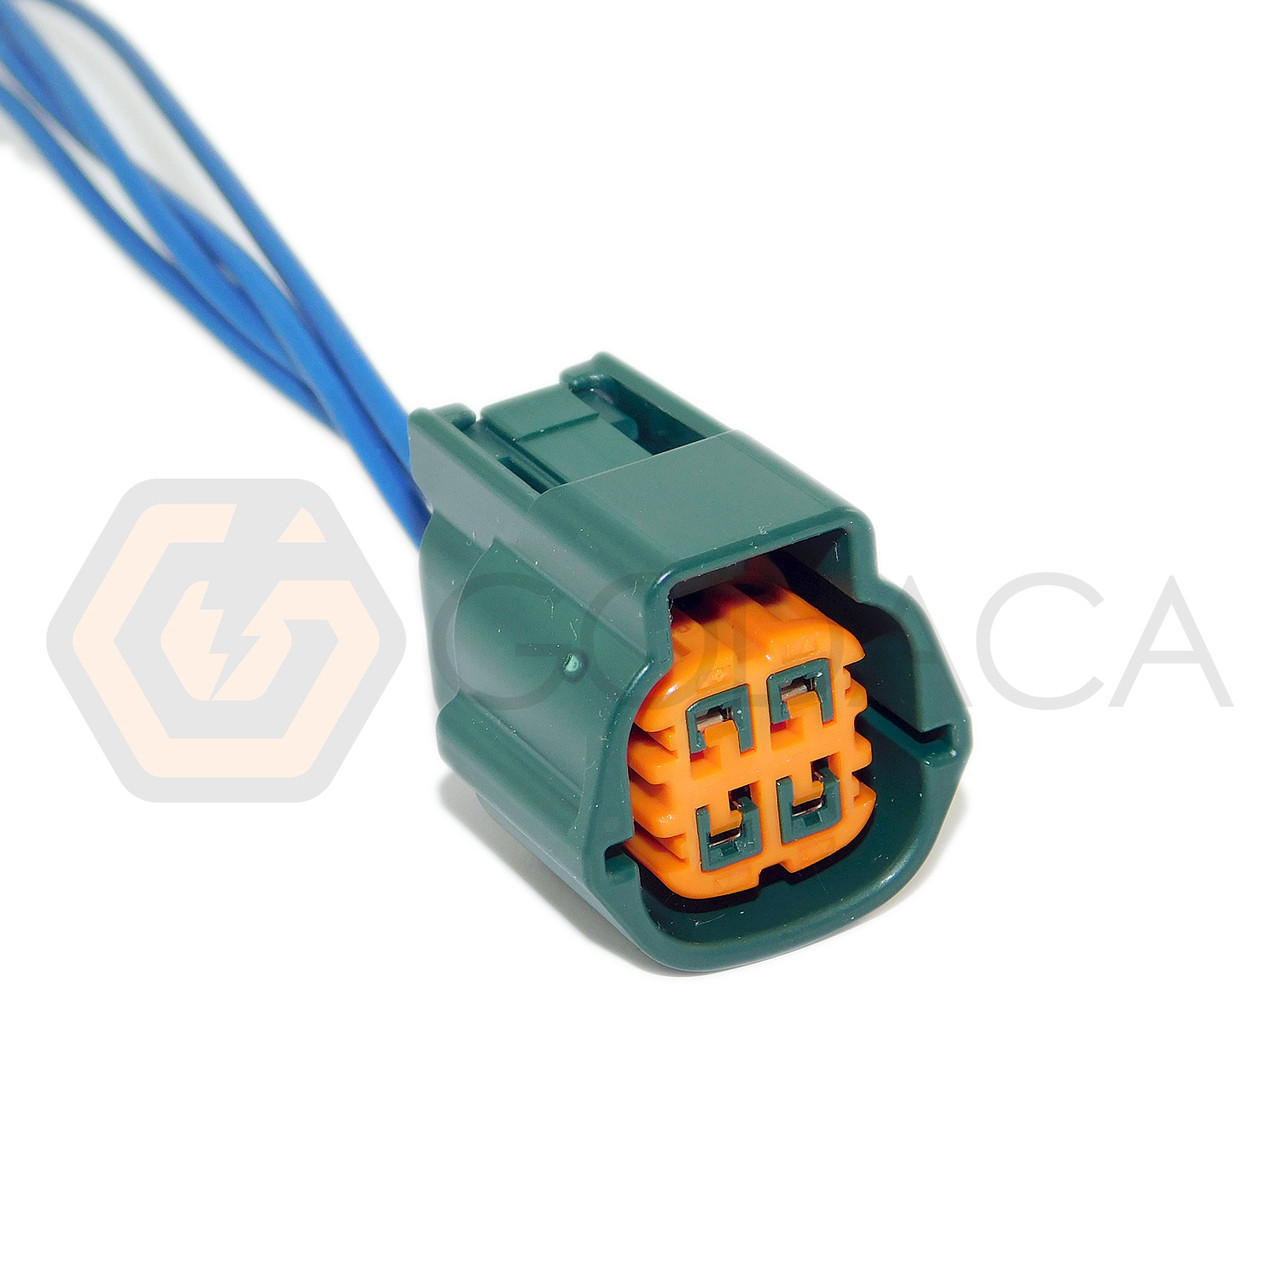 hight resolution of 1x connector 4 pin 4 way for o2 sensor subaru nissan rs04fg godaca llc